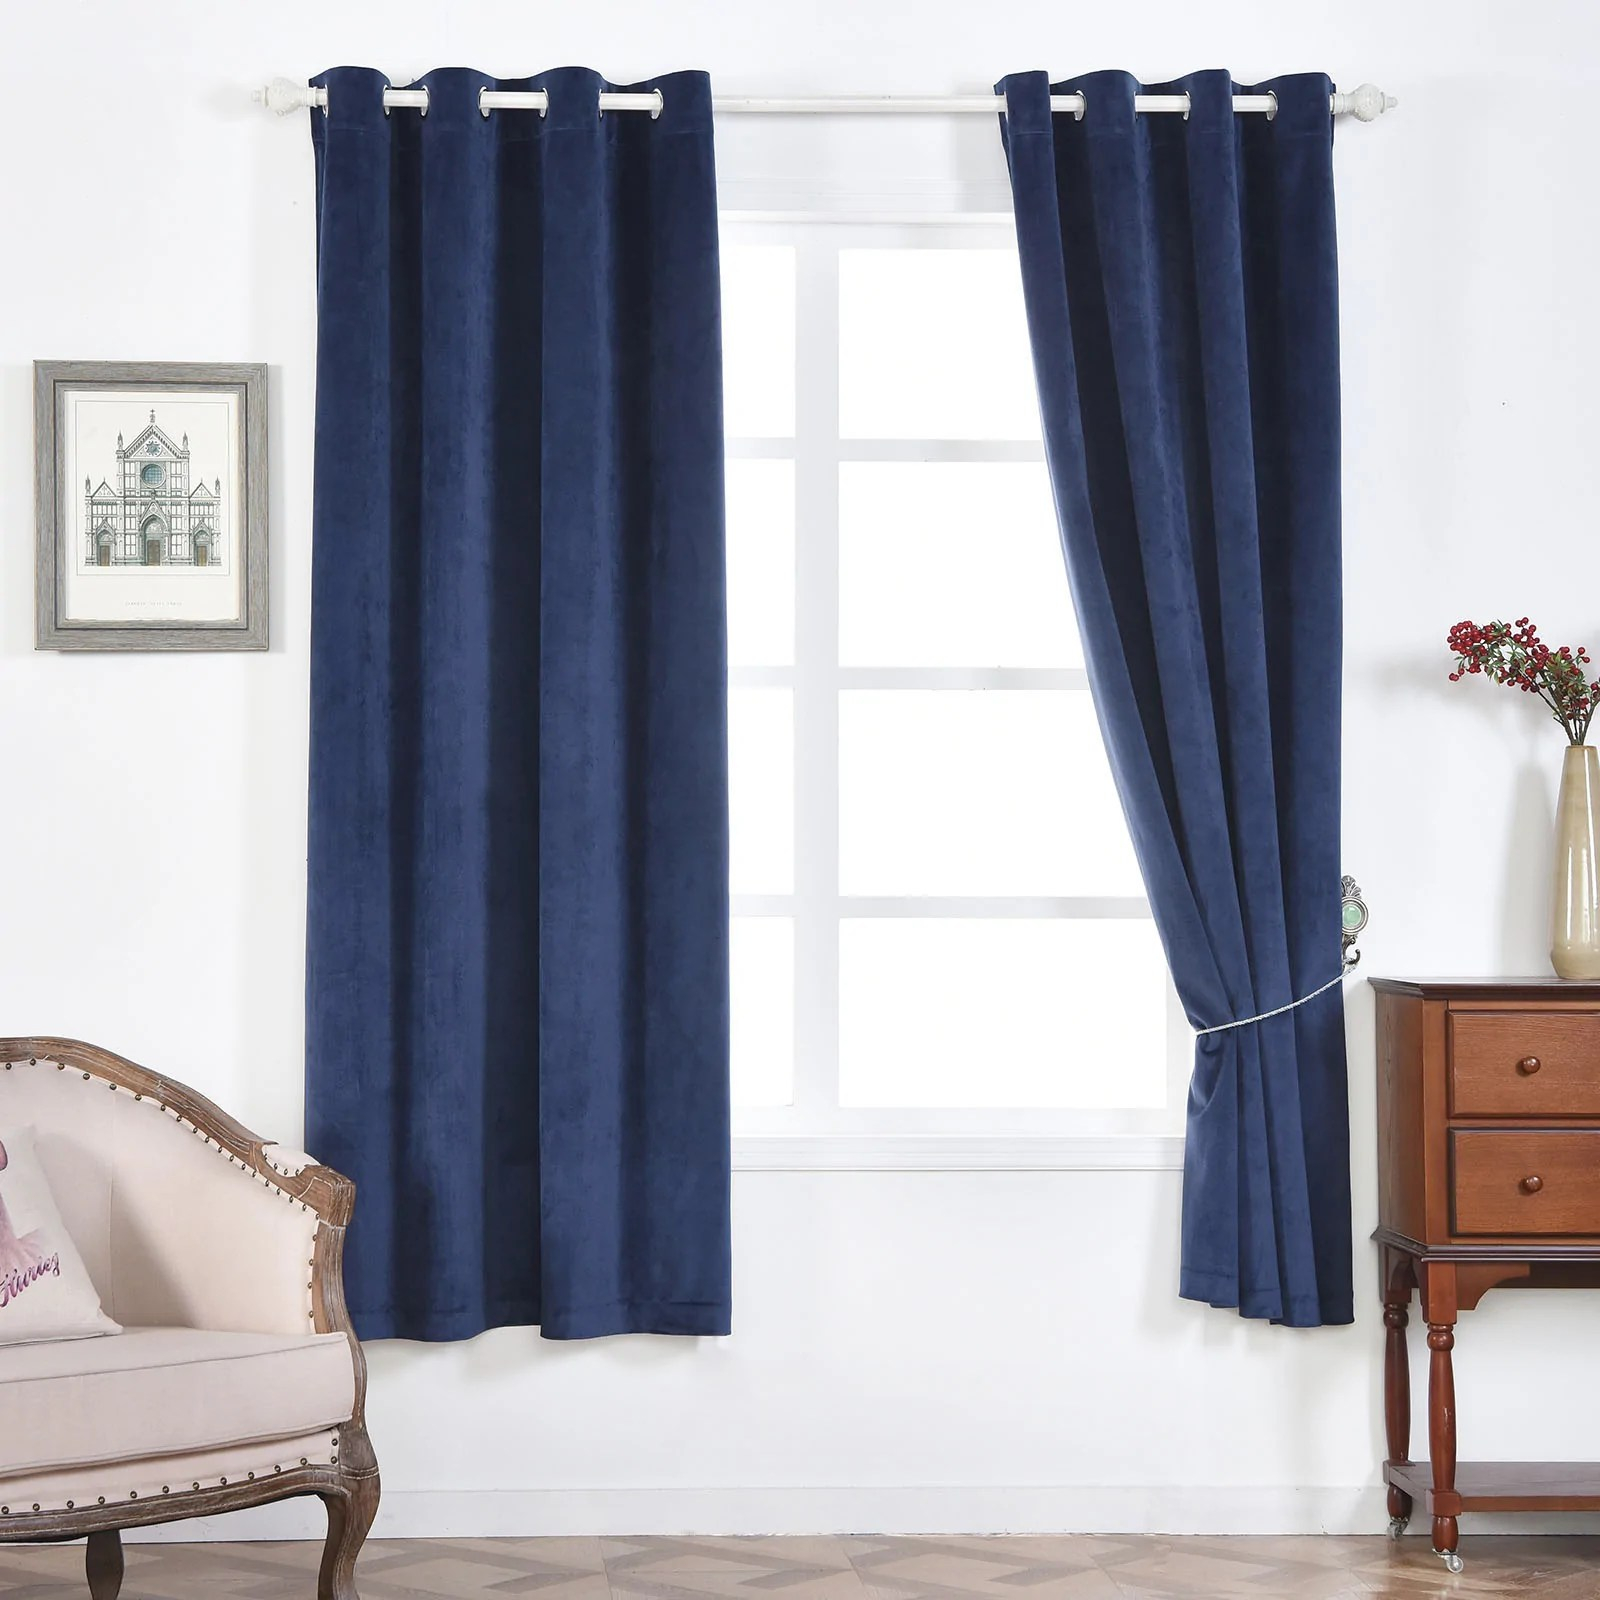 Heavy Thermal Curtains Navy Blue Blackout Curtains 2 Packs 52 X 64 Inch Length